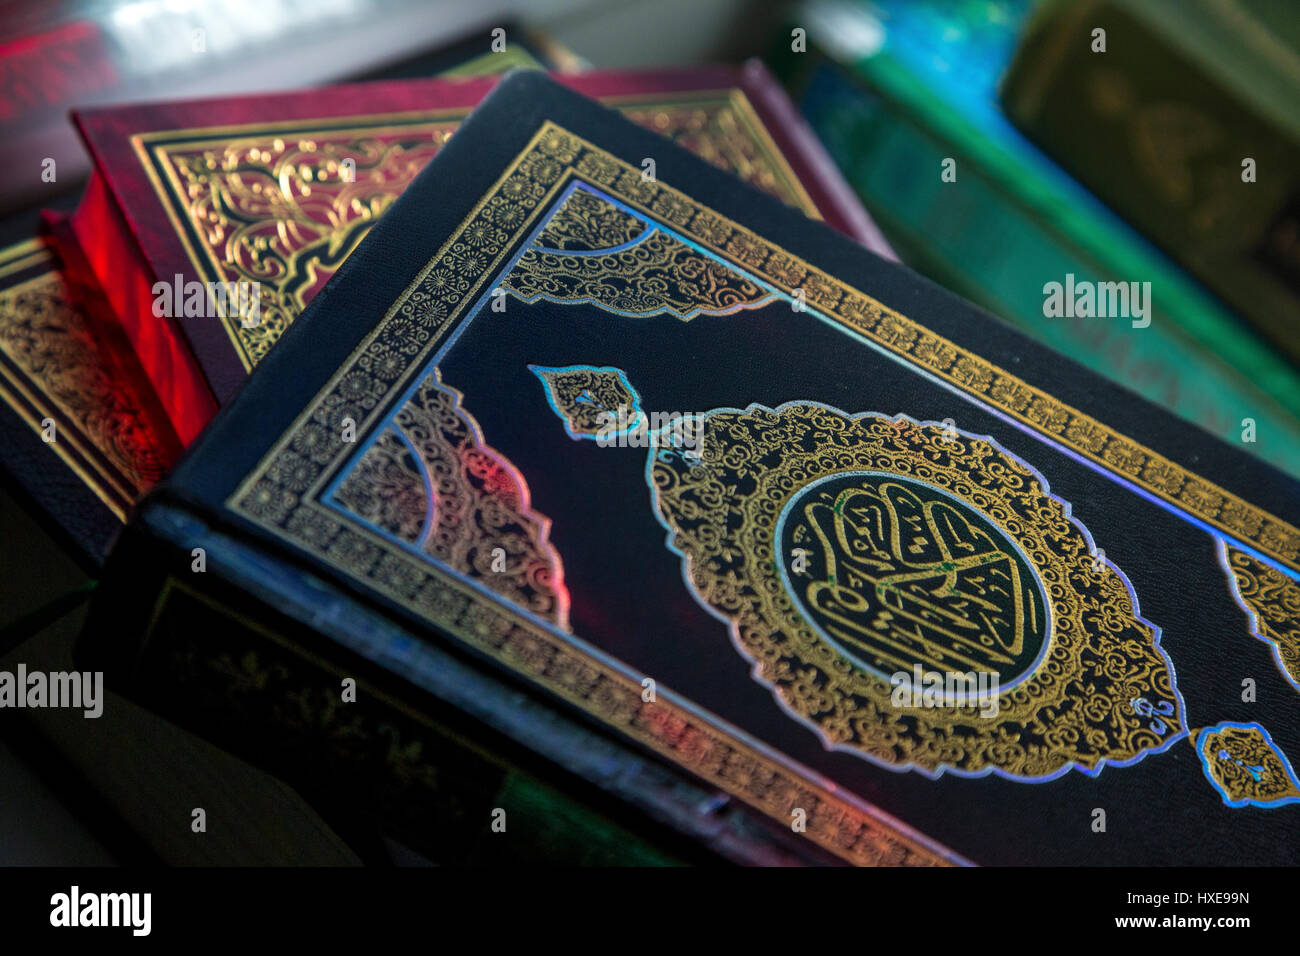 The holy book of Muslims - the Koran is on the stand in the mosque during the prayer - Stock Image